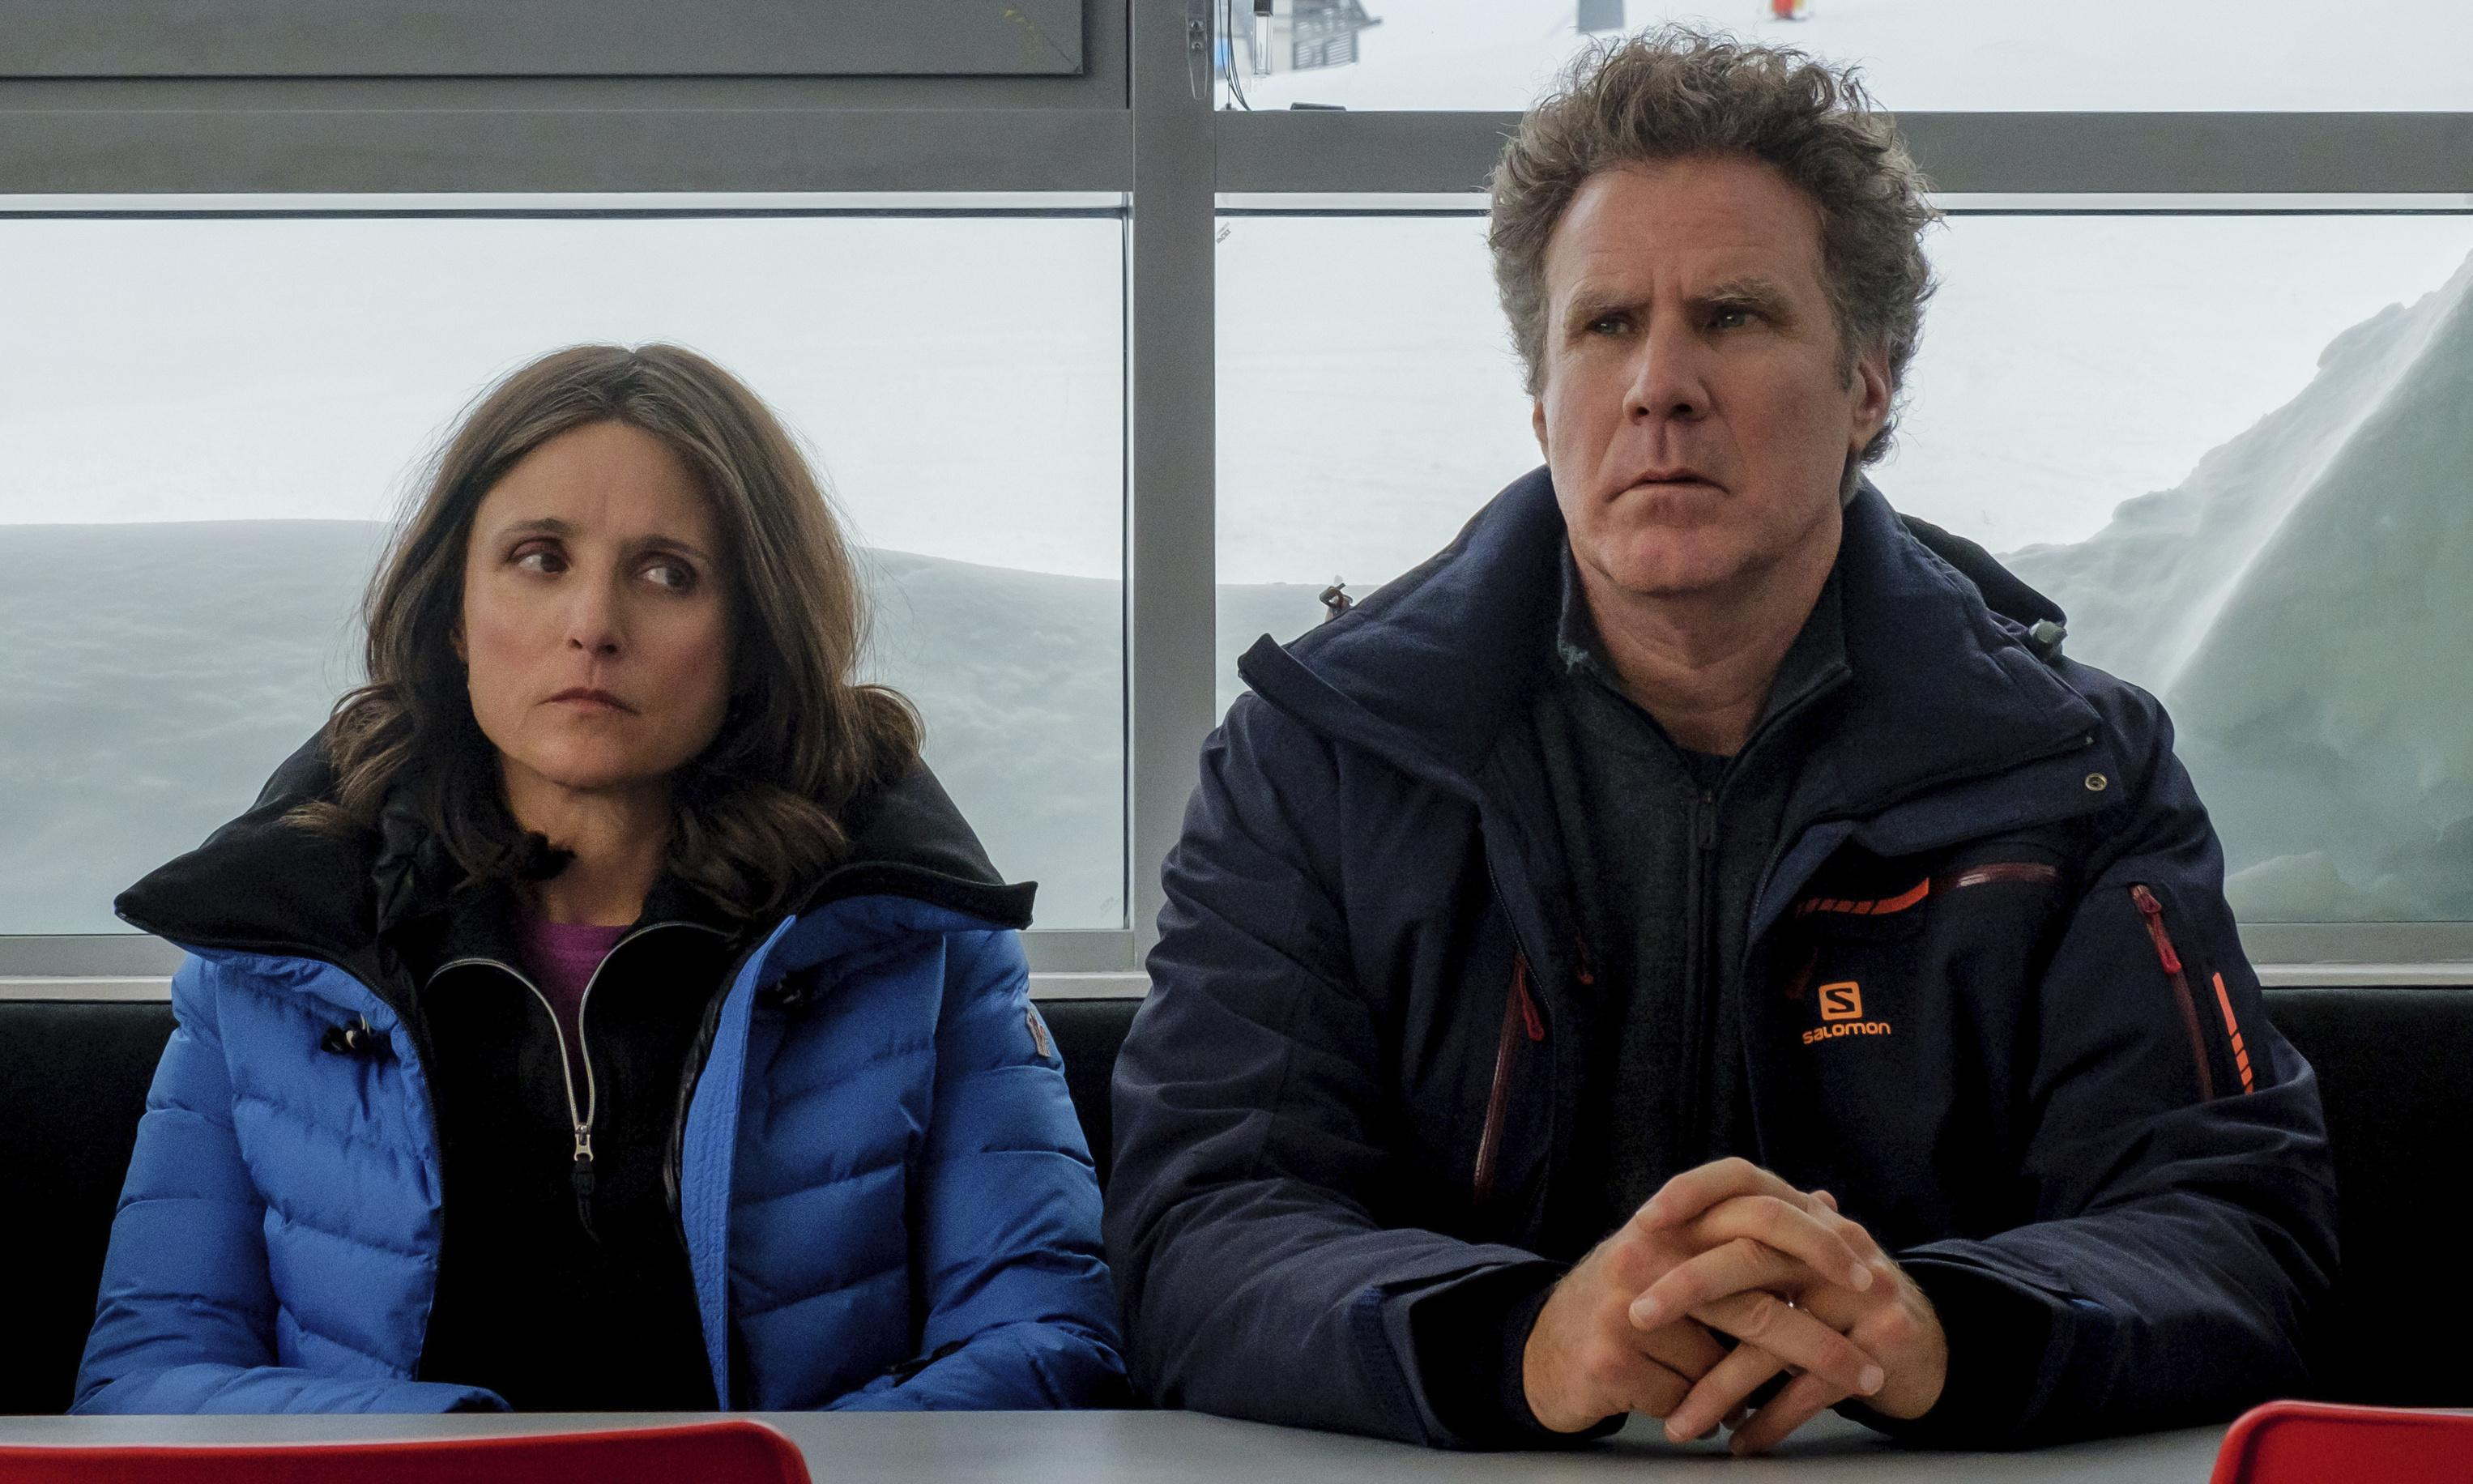 Downhill review – Ferrell and Louis-Dreyfus crash with redundant remake